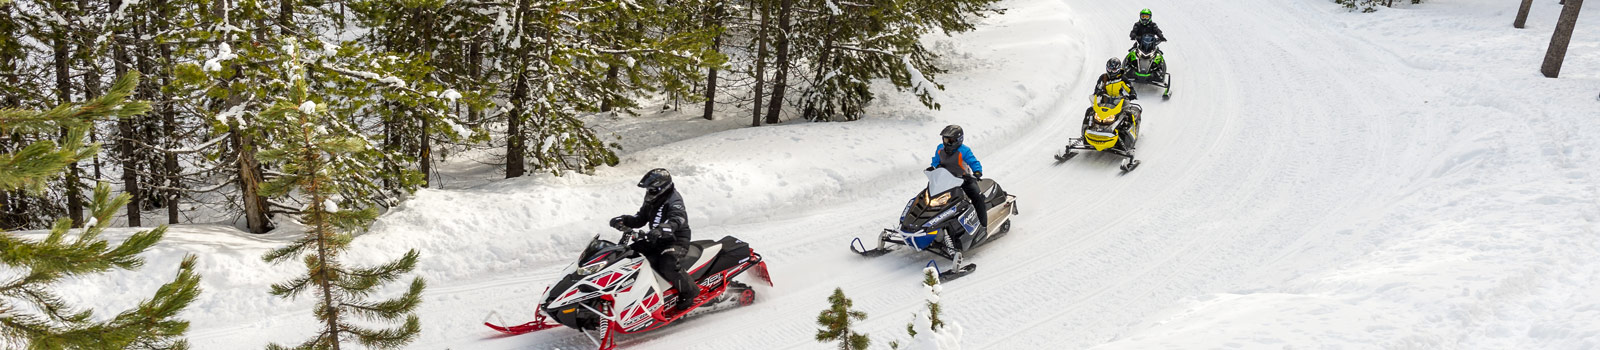 Snowmobilers riding trails